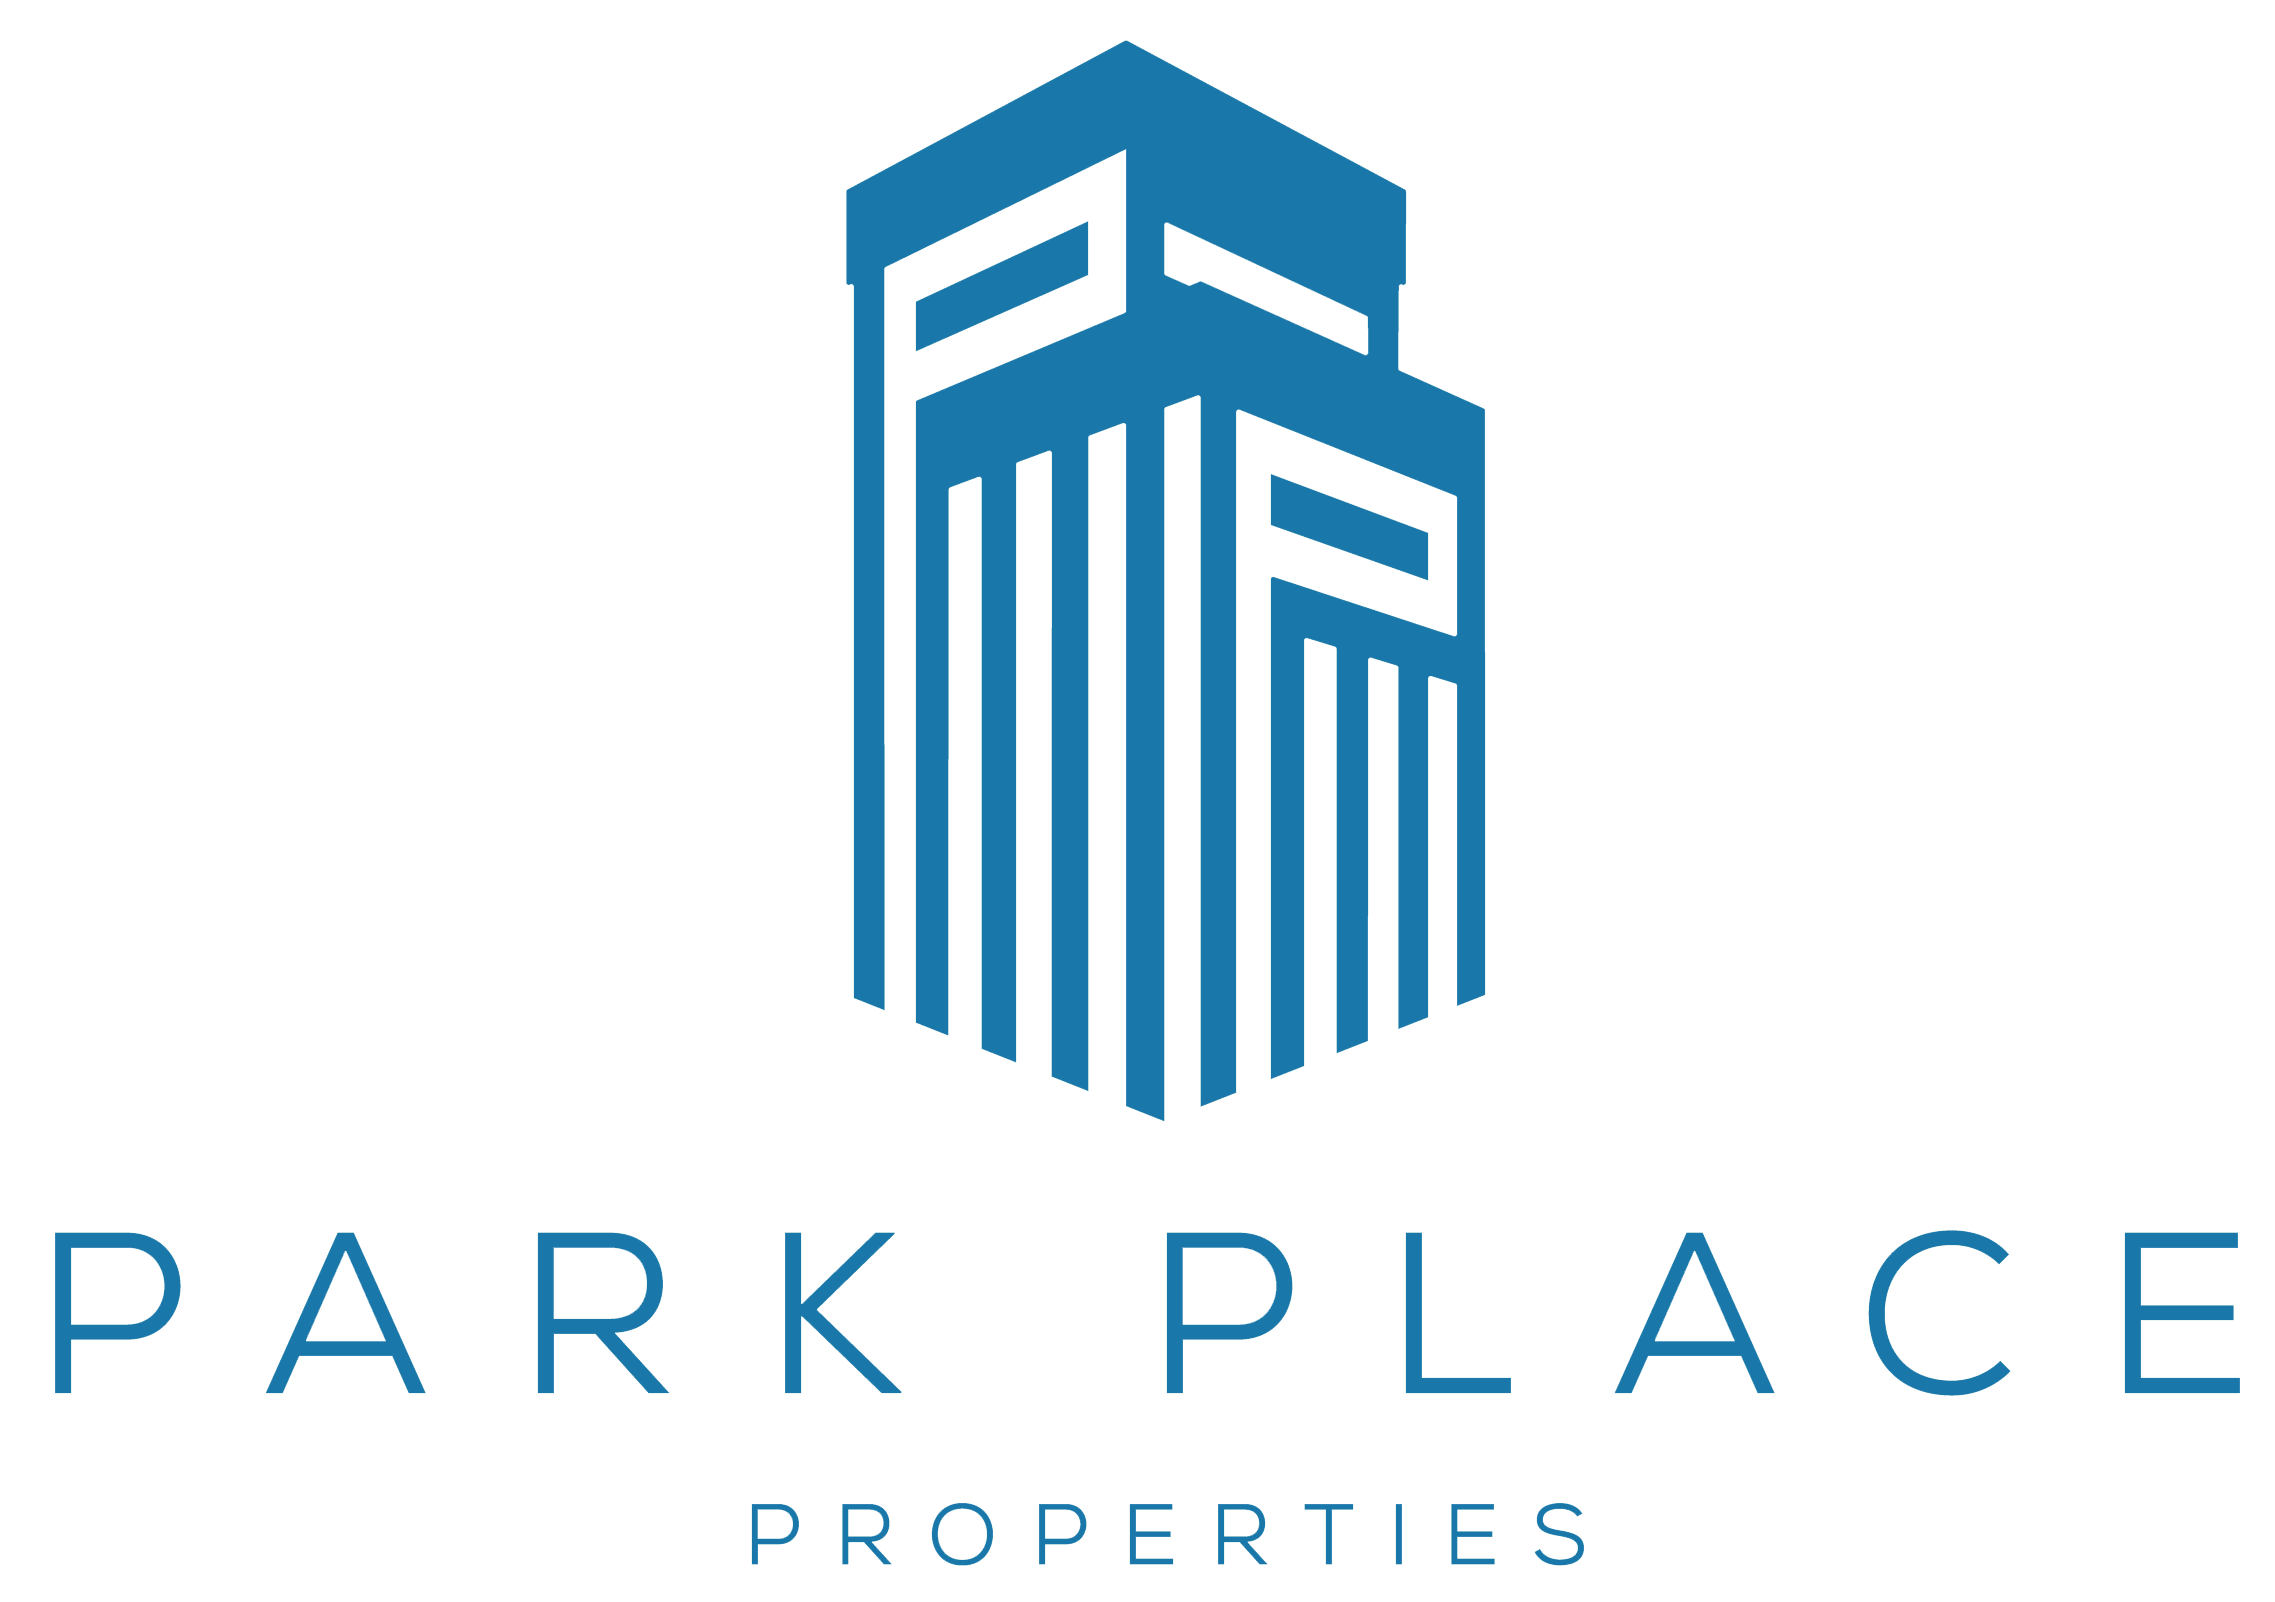 Toronto Airbnb Rental Management Company, Park Place Property Management, Charges The Lowest Rates & Has 98% Occupancy Rate During Covid-19